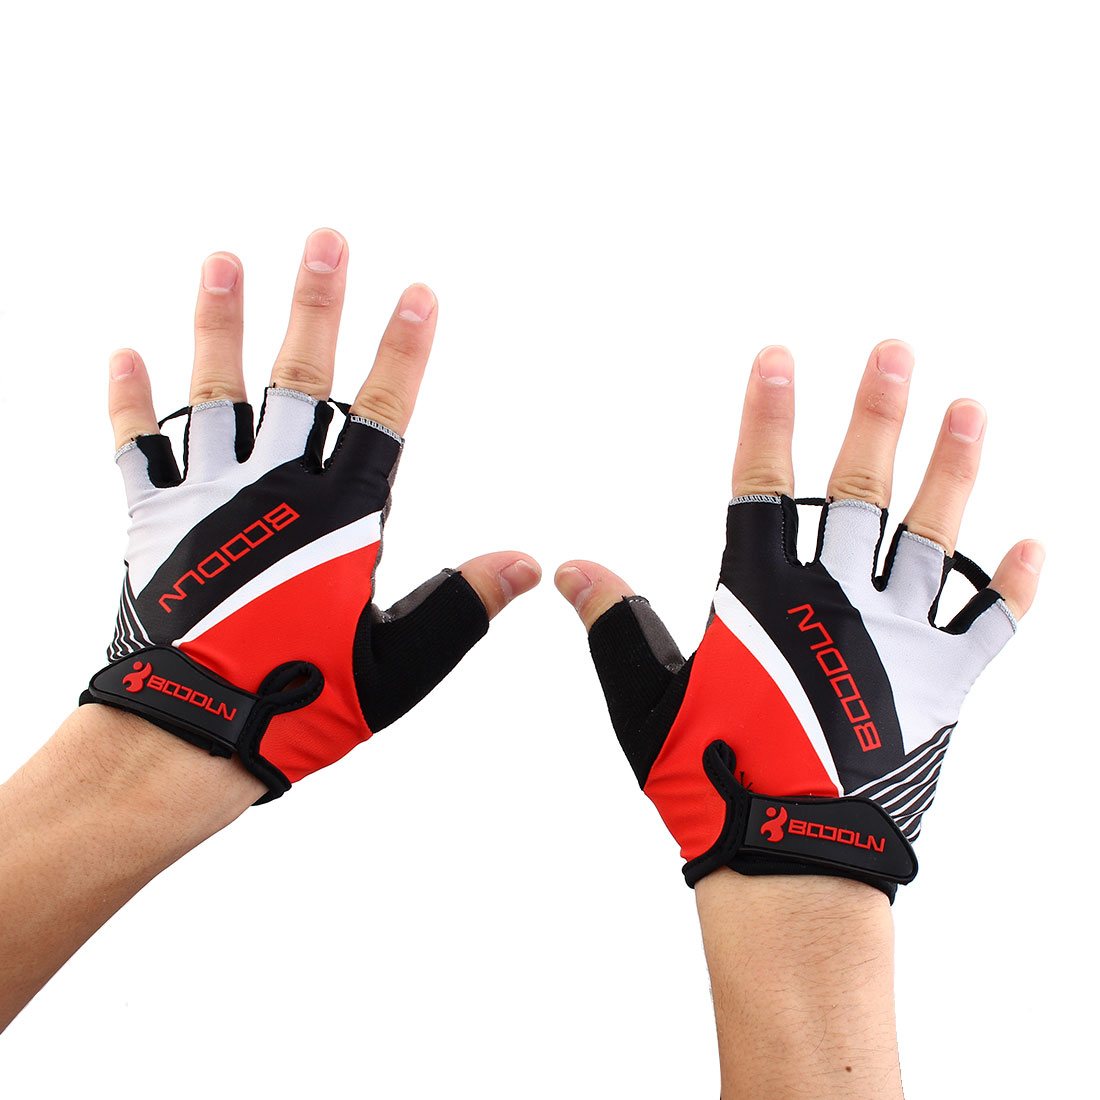 BOODUN Authorized Unisex Exercise Sports Cycling Fitness Half Finger Palm Support Gloves Red Size M Pair